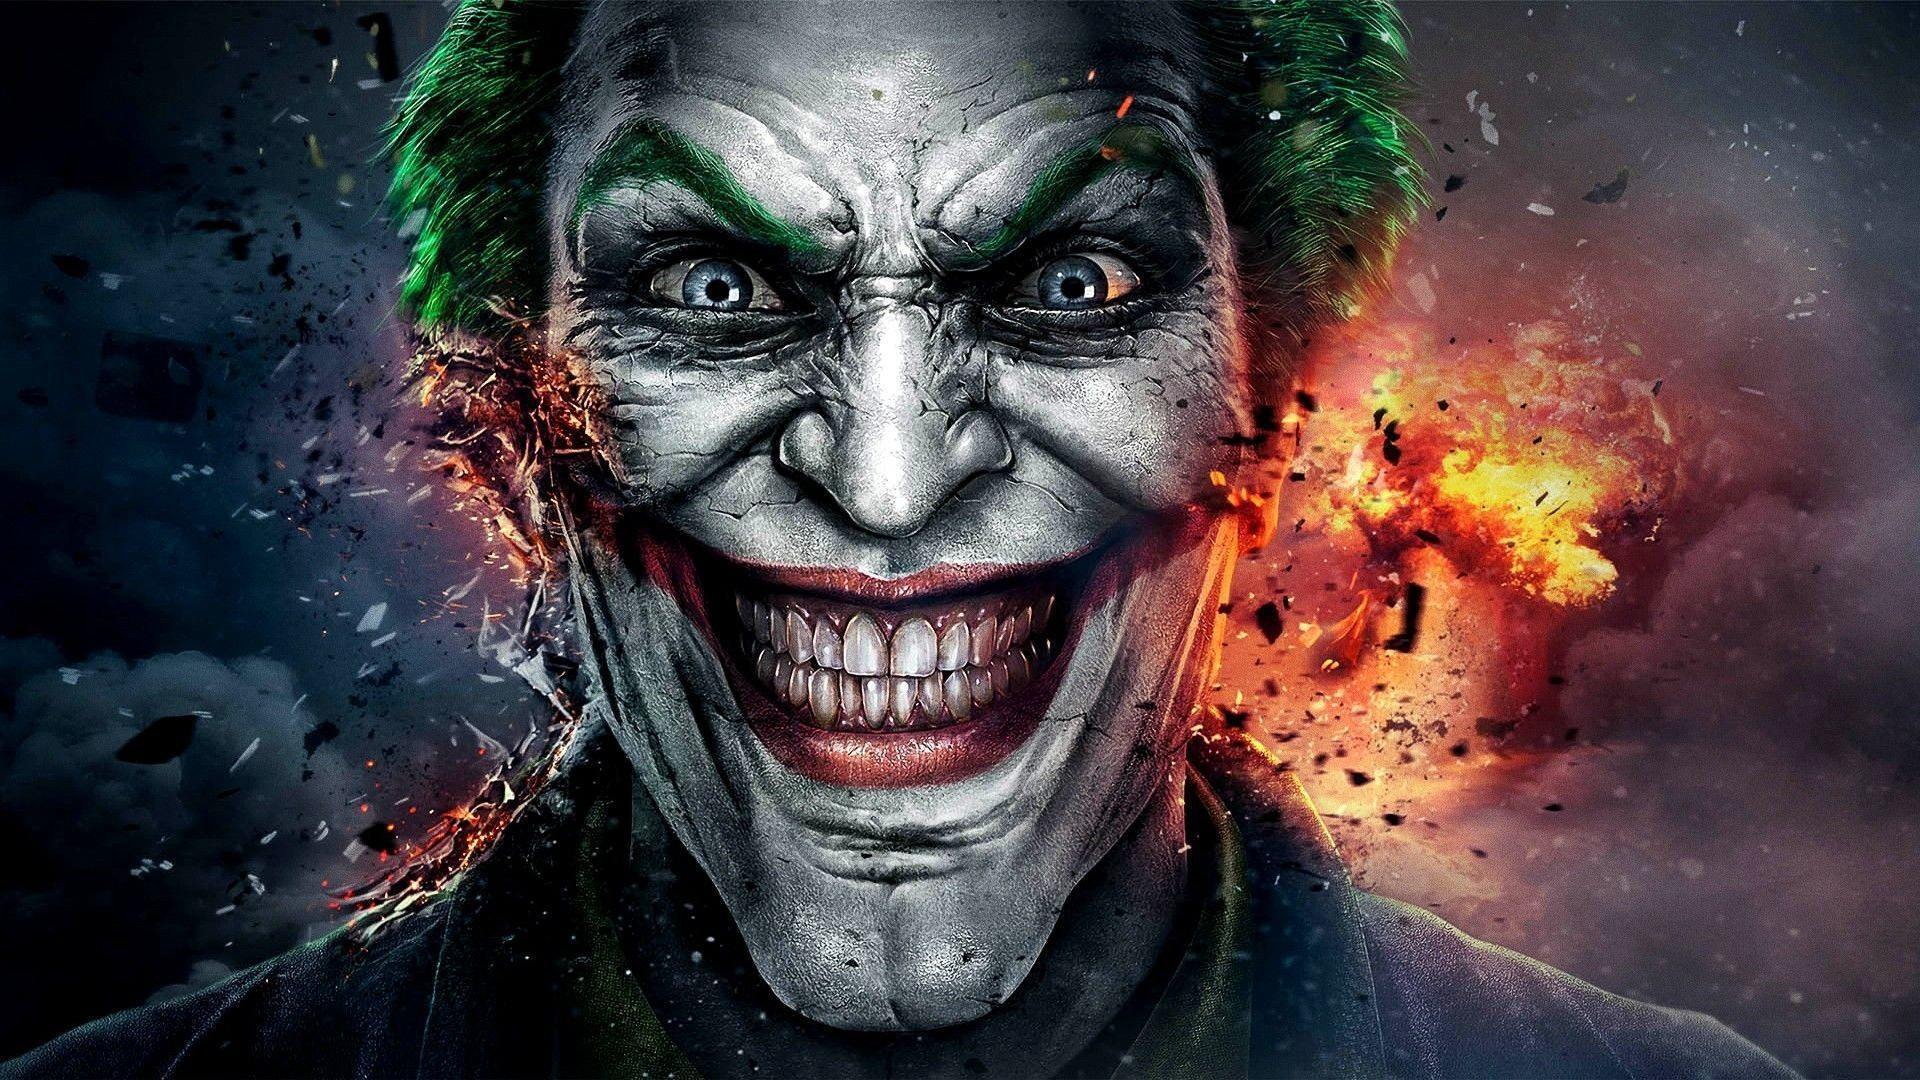 1920x1080 Wallpapers For > Batman Joker Wallpaper For Android